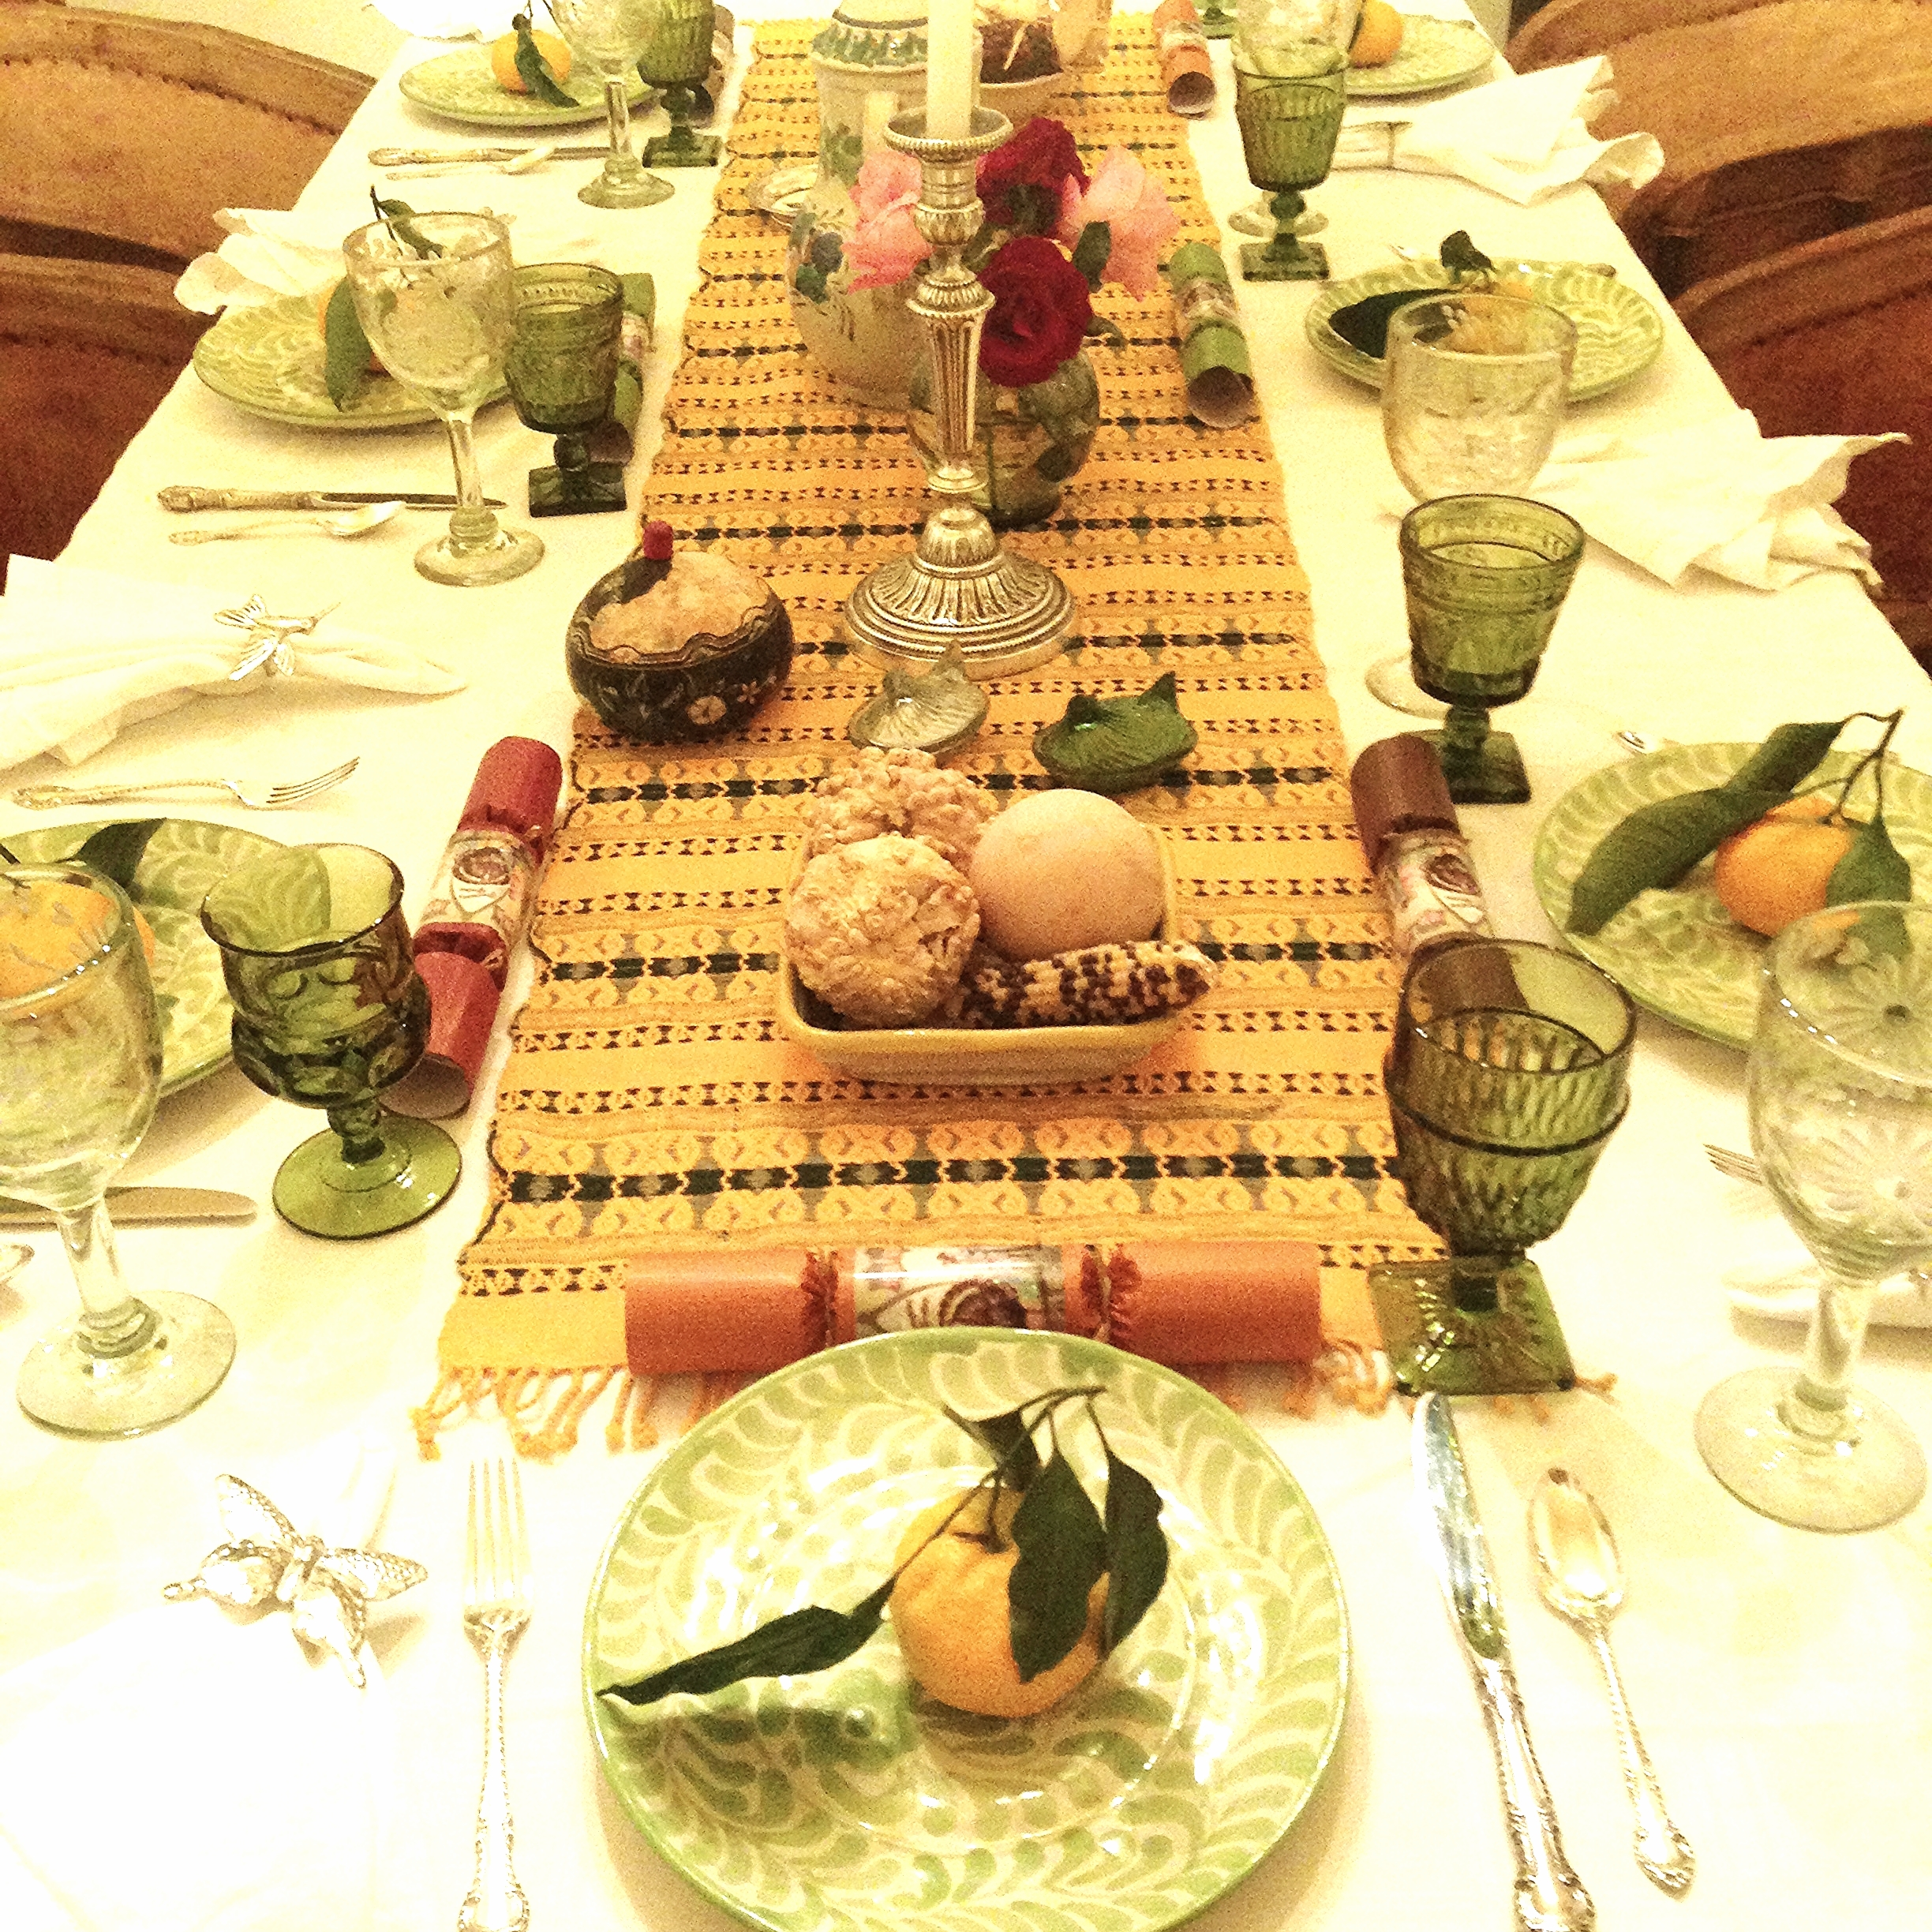 Our annual table includes many Mexican influences, from the dishes to pottery to glassware. Other touches are vintage or a nod to other cultures: poppers from England and tangerines originally inspired by a photo I found from Spain.